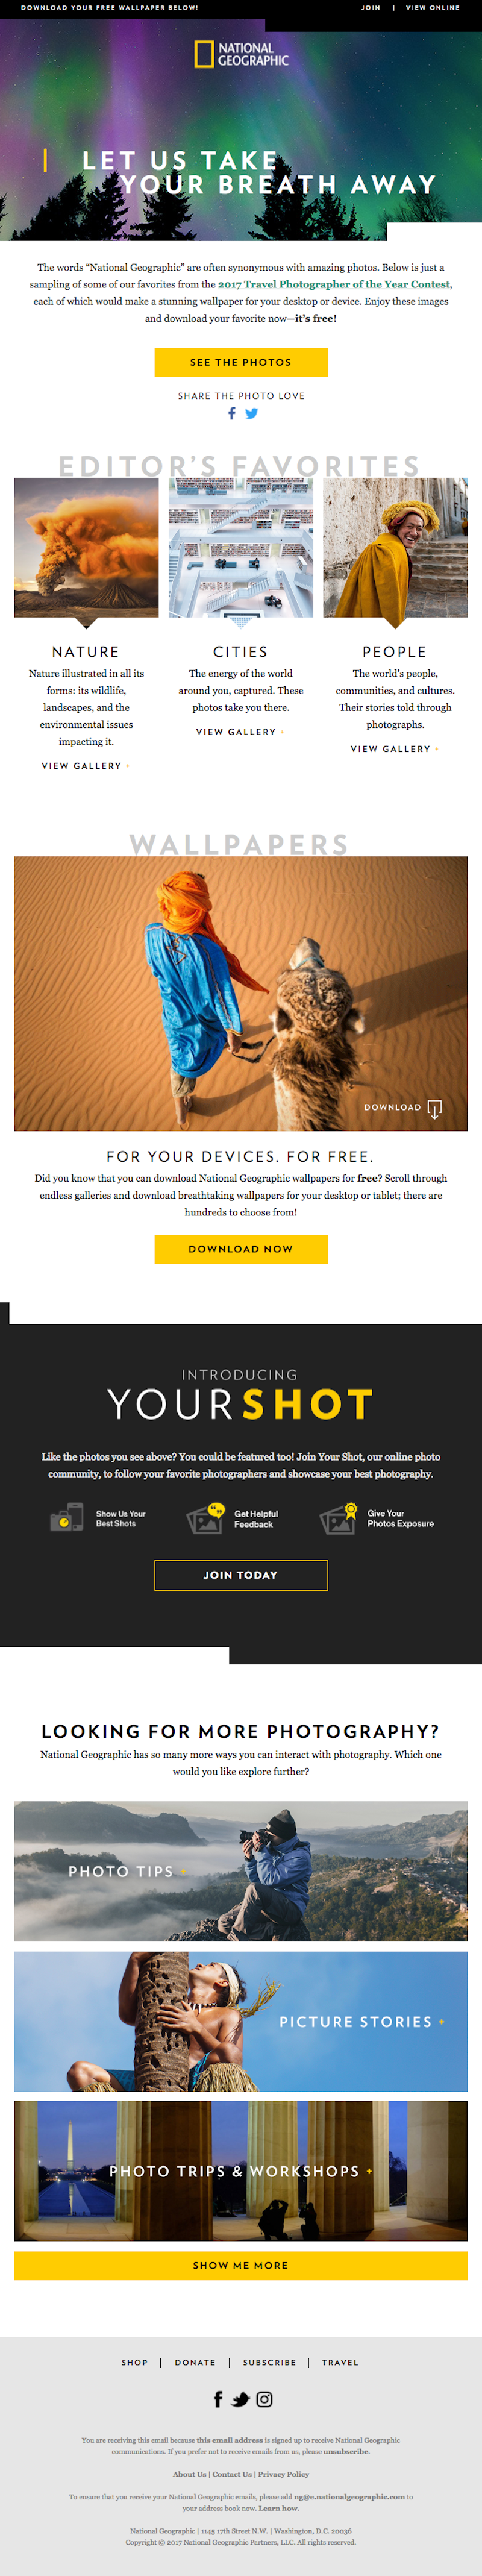 Email from National Geographic that includes links to educational content about photography